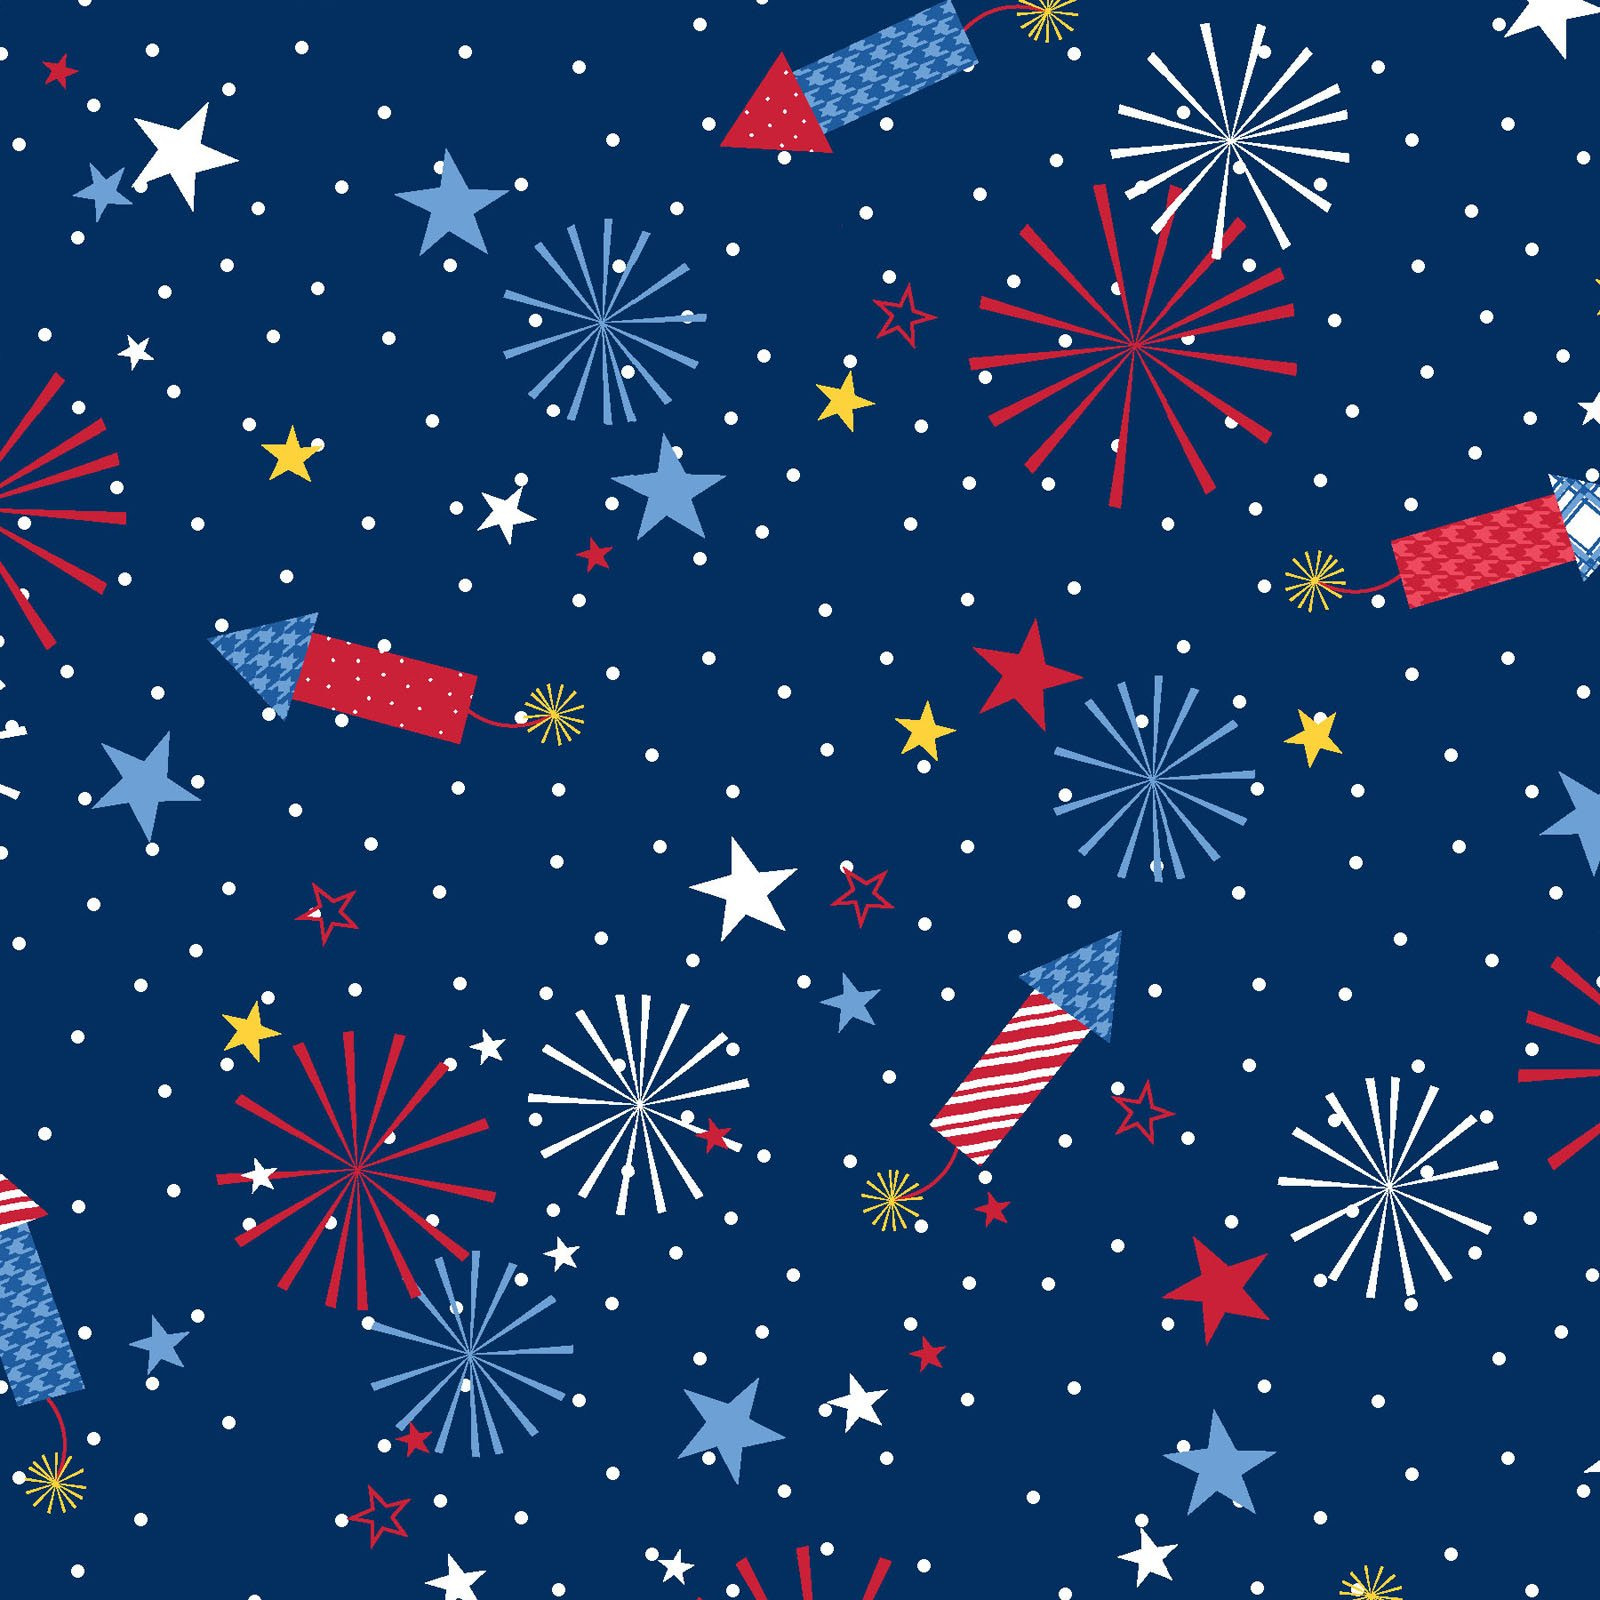 EESC-9903 N - RED, WHITE & BLOOM BY KIMBERBELL FIREWORKS NAVY - ARRIVING MARCH 2021